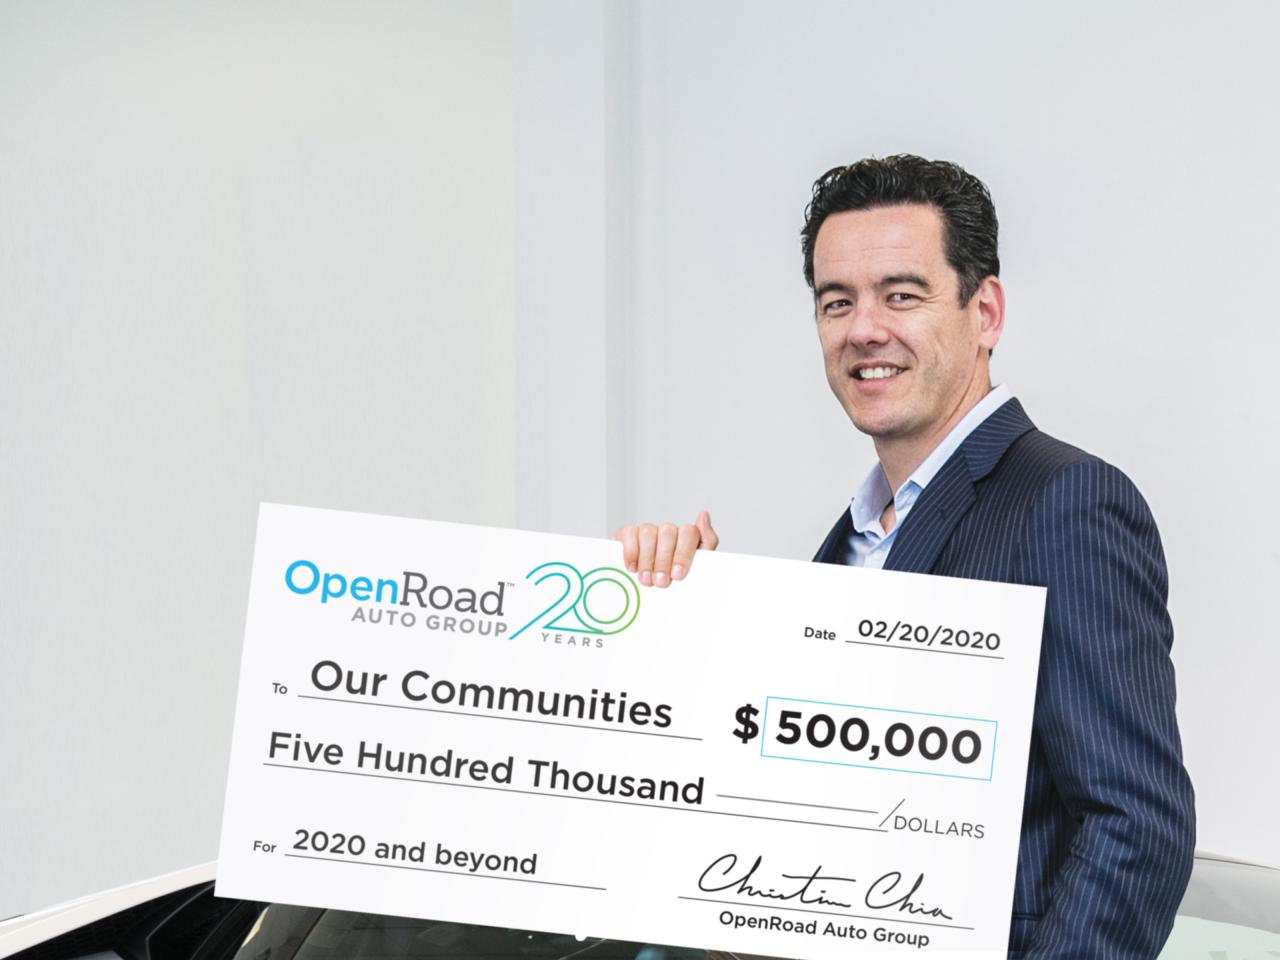 OpenRoad's Christian Chia donates $500,000 to charities in 2020